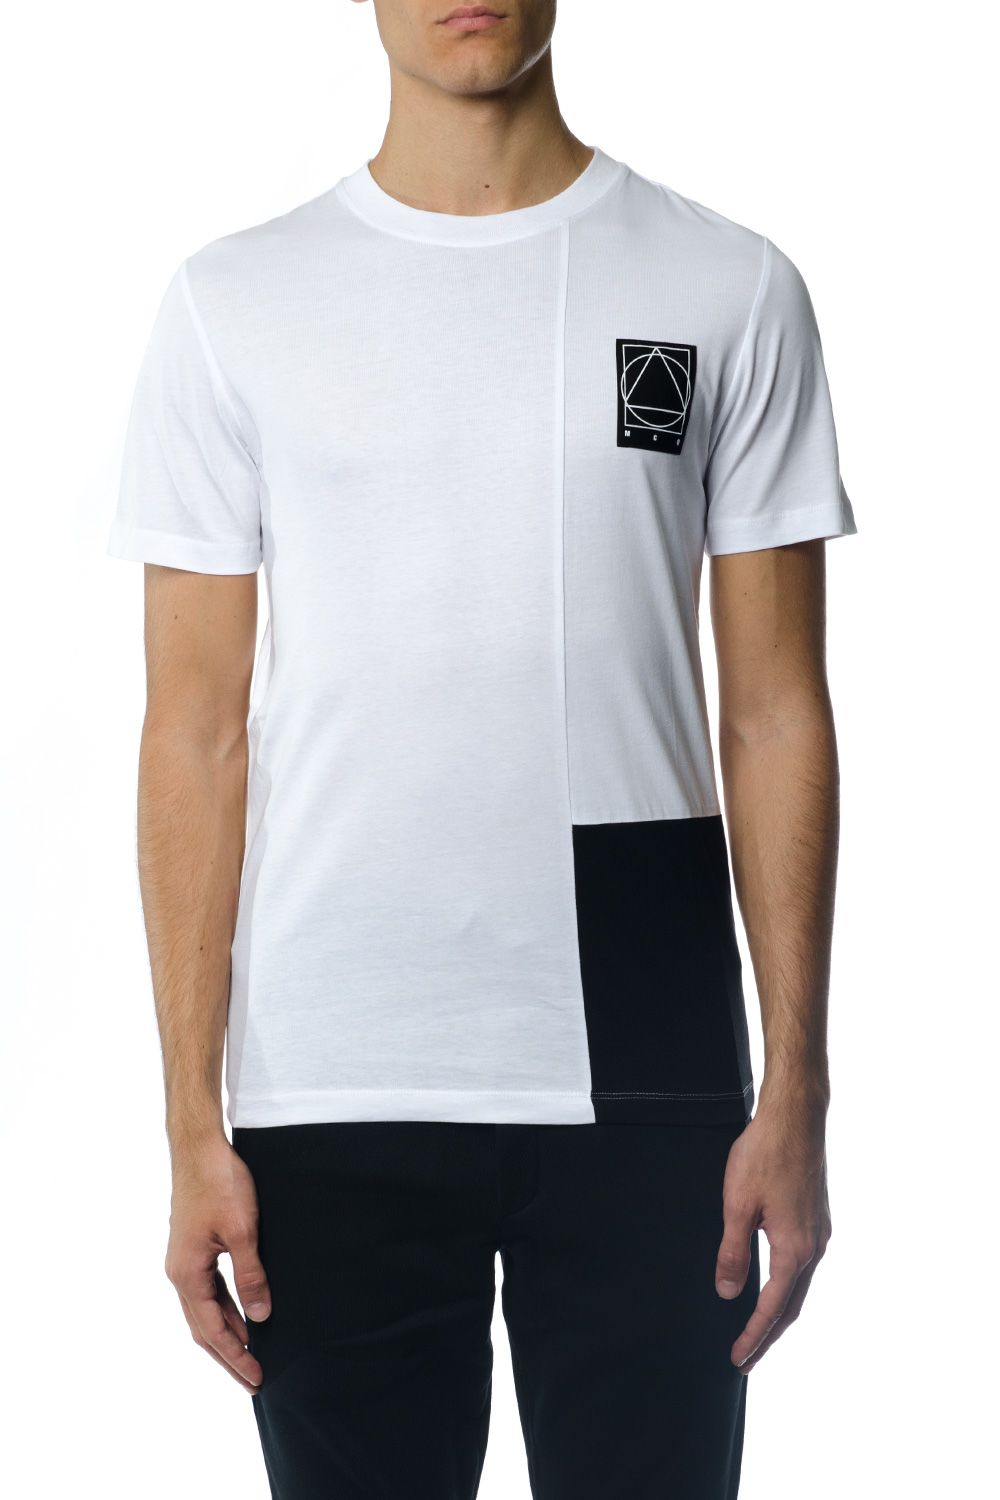 McQ Alexander McQueen Cotton T-shirt With Iconic Patch